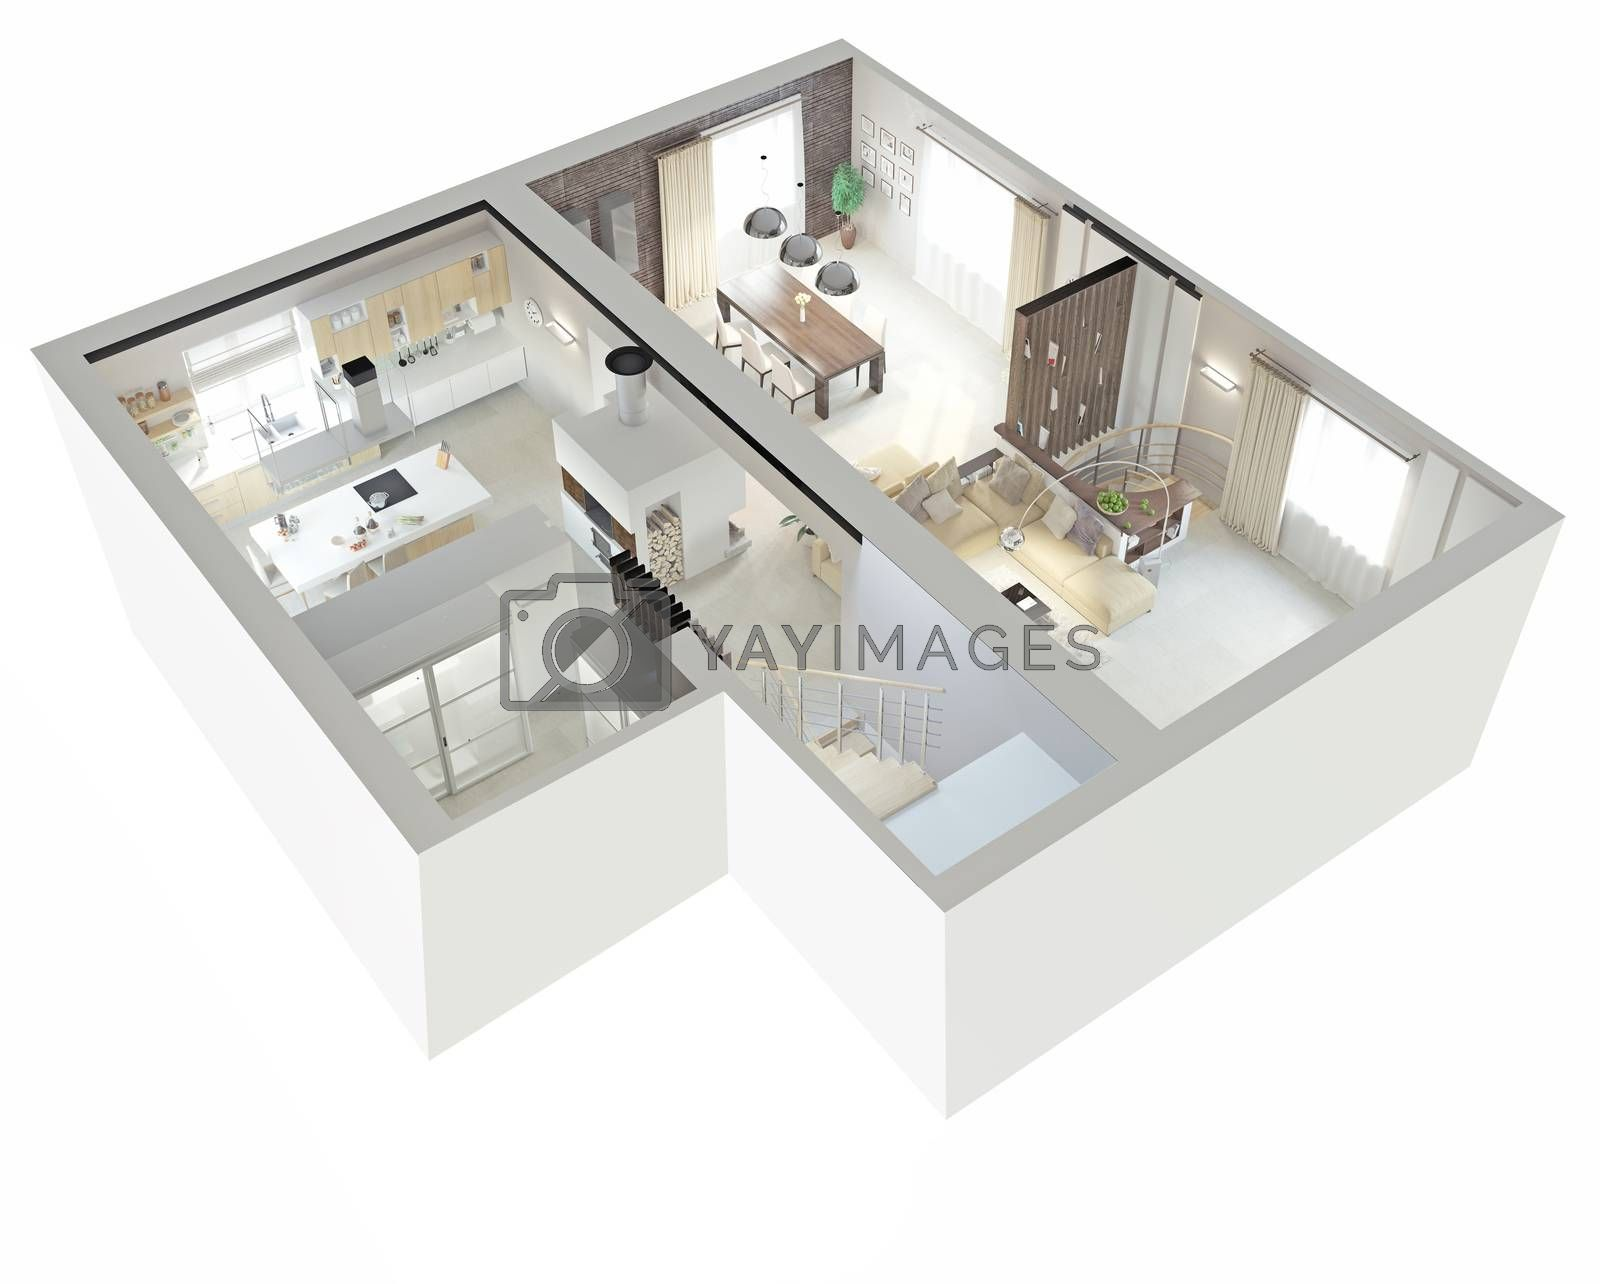 Plan view of an apartment by vicnt